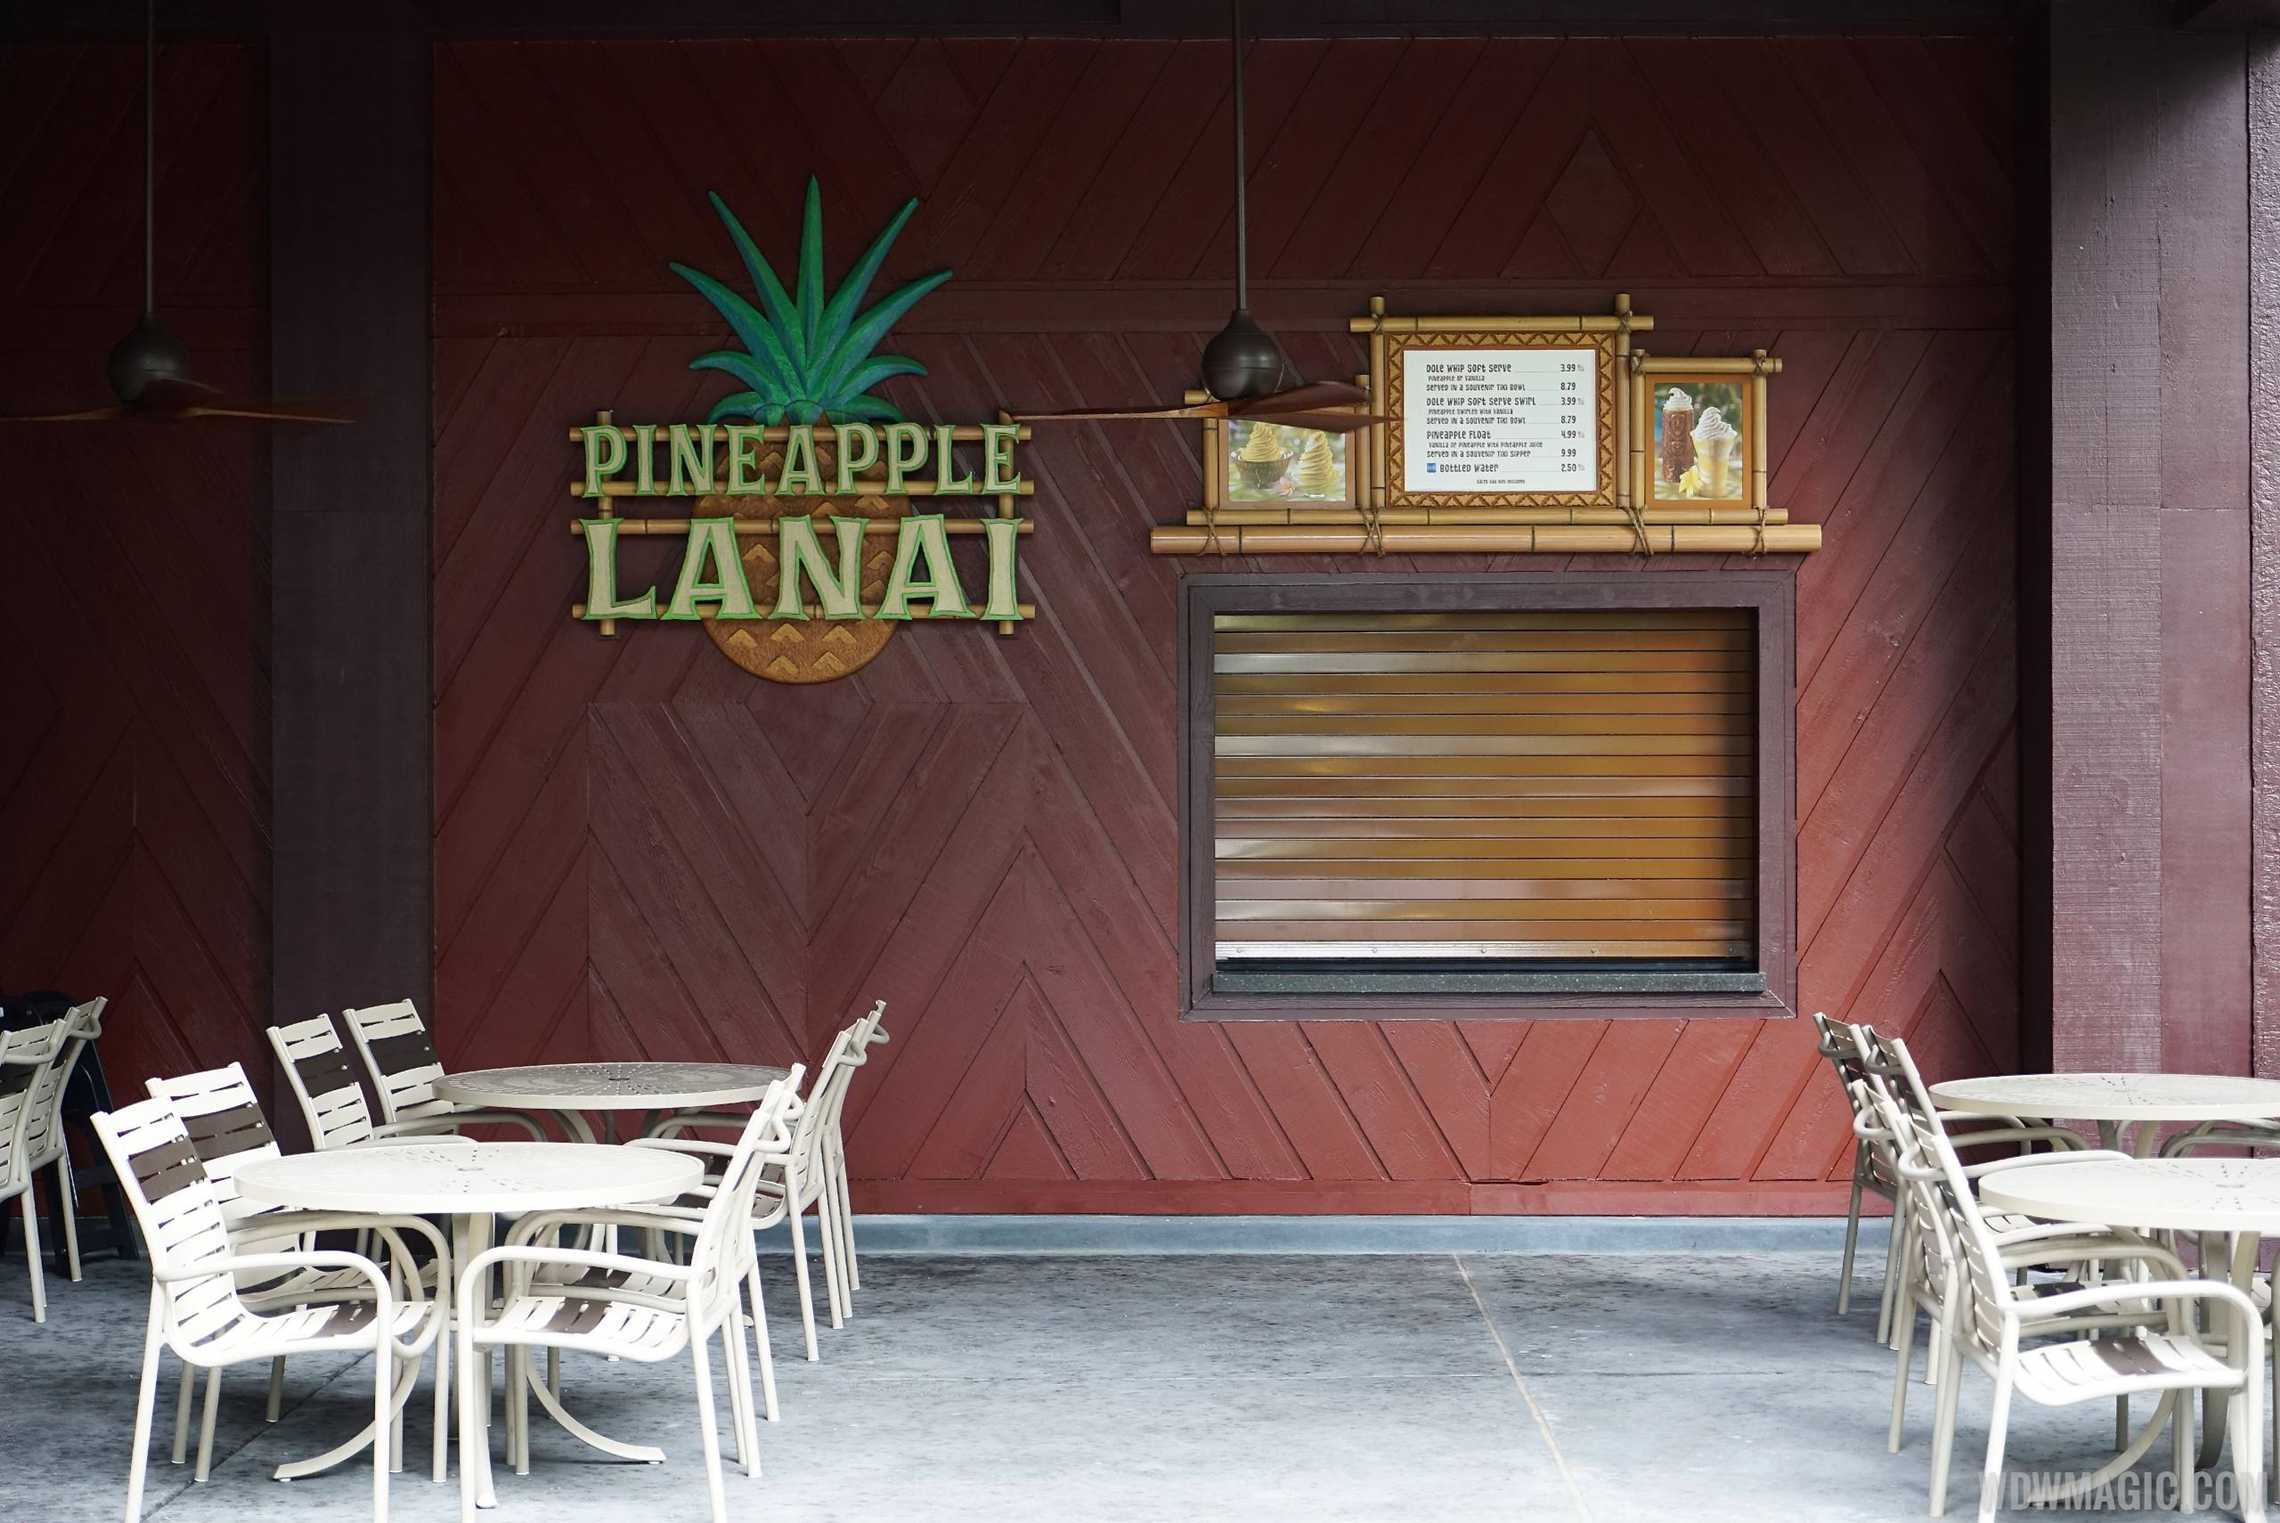 Pineapple Lanai kiosk and seating